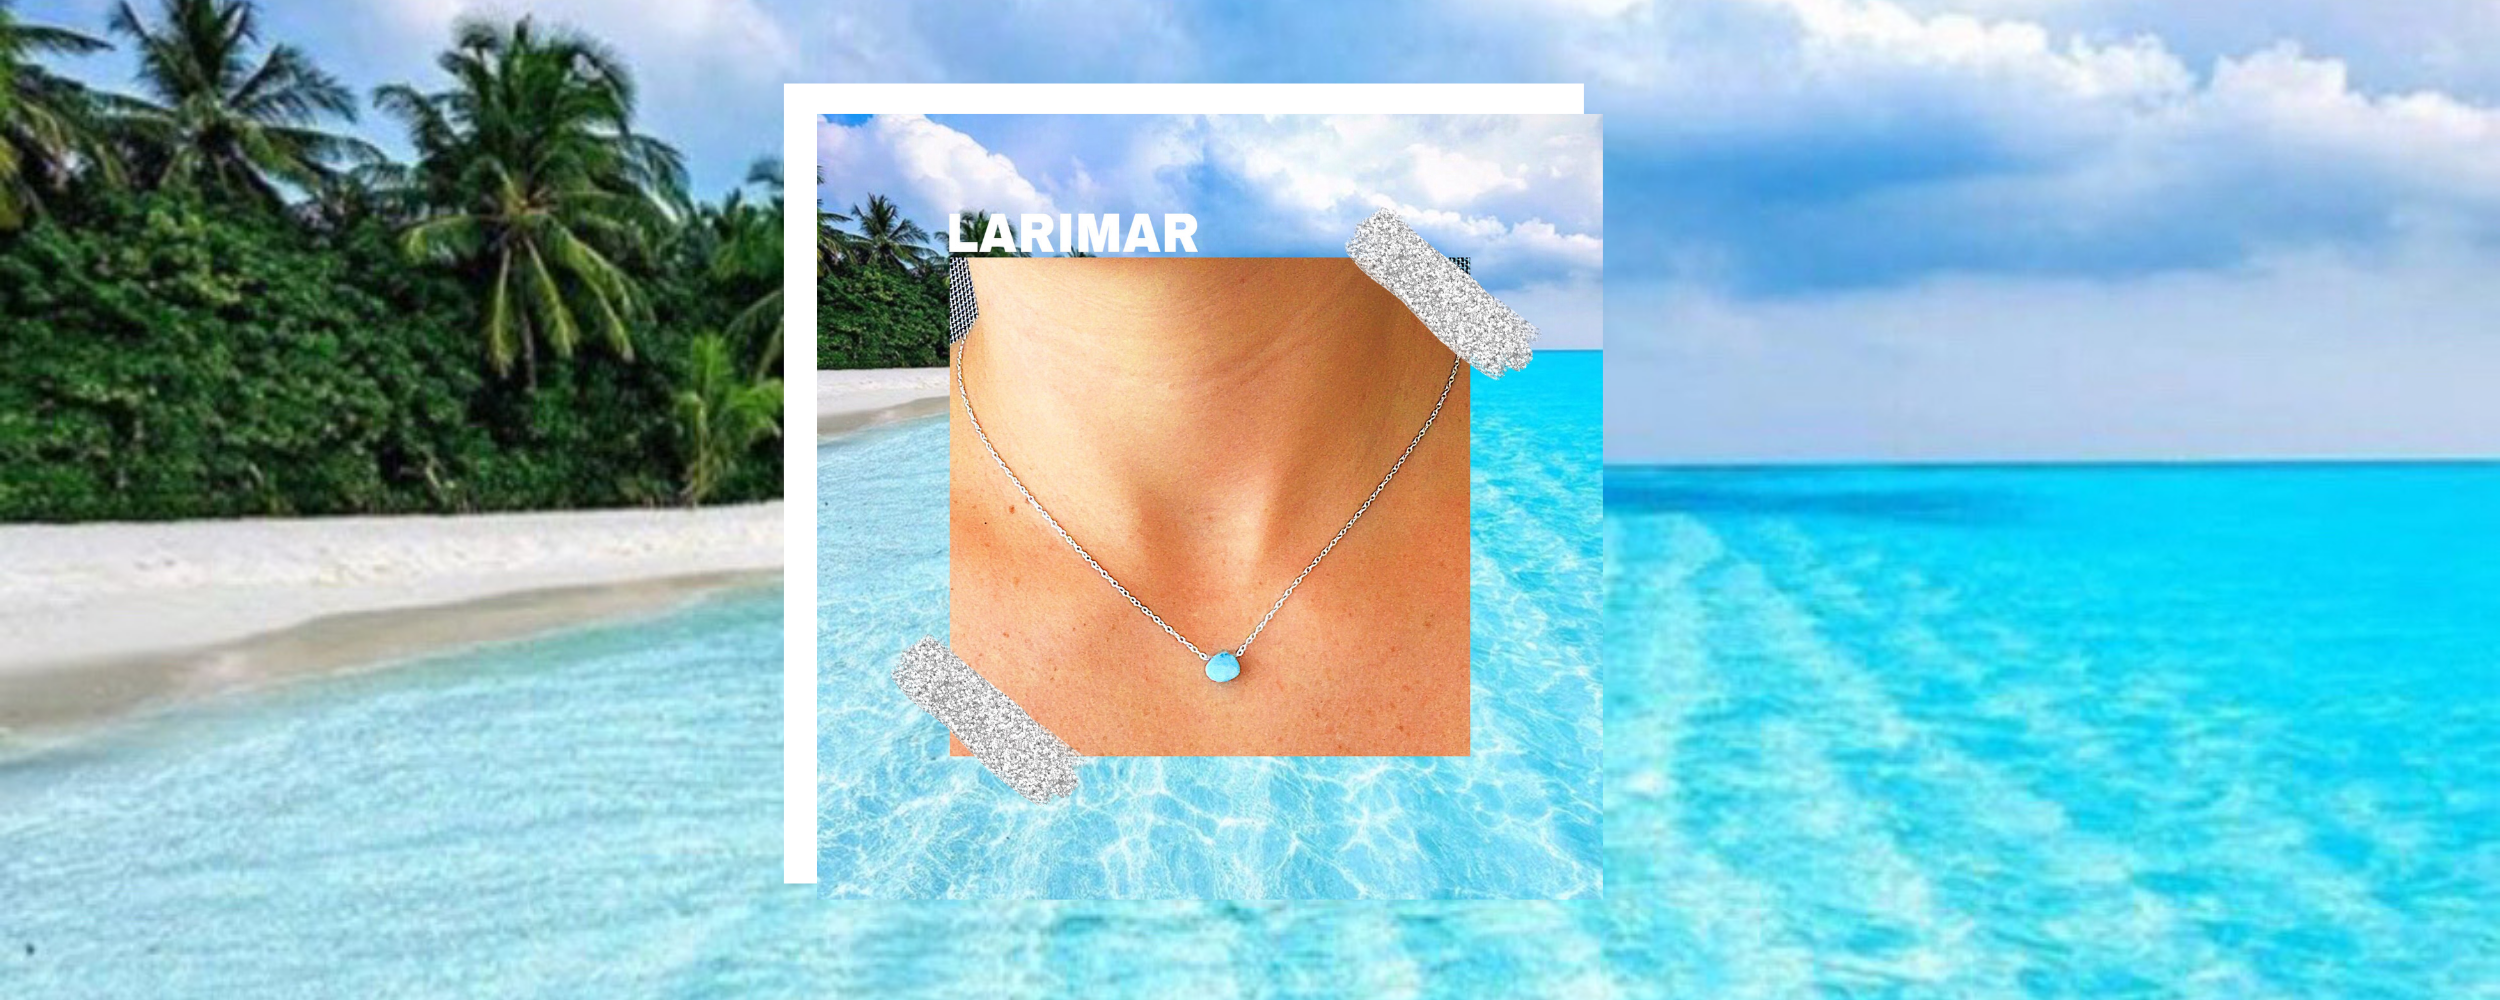 A Brand new original to Golden zen Boutique: The Larimar necklace - handcrafted from 925 sterling silver & grade a Larimar Stones sourced from the dominican republic.